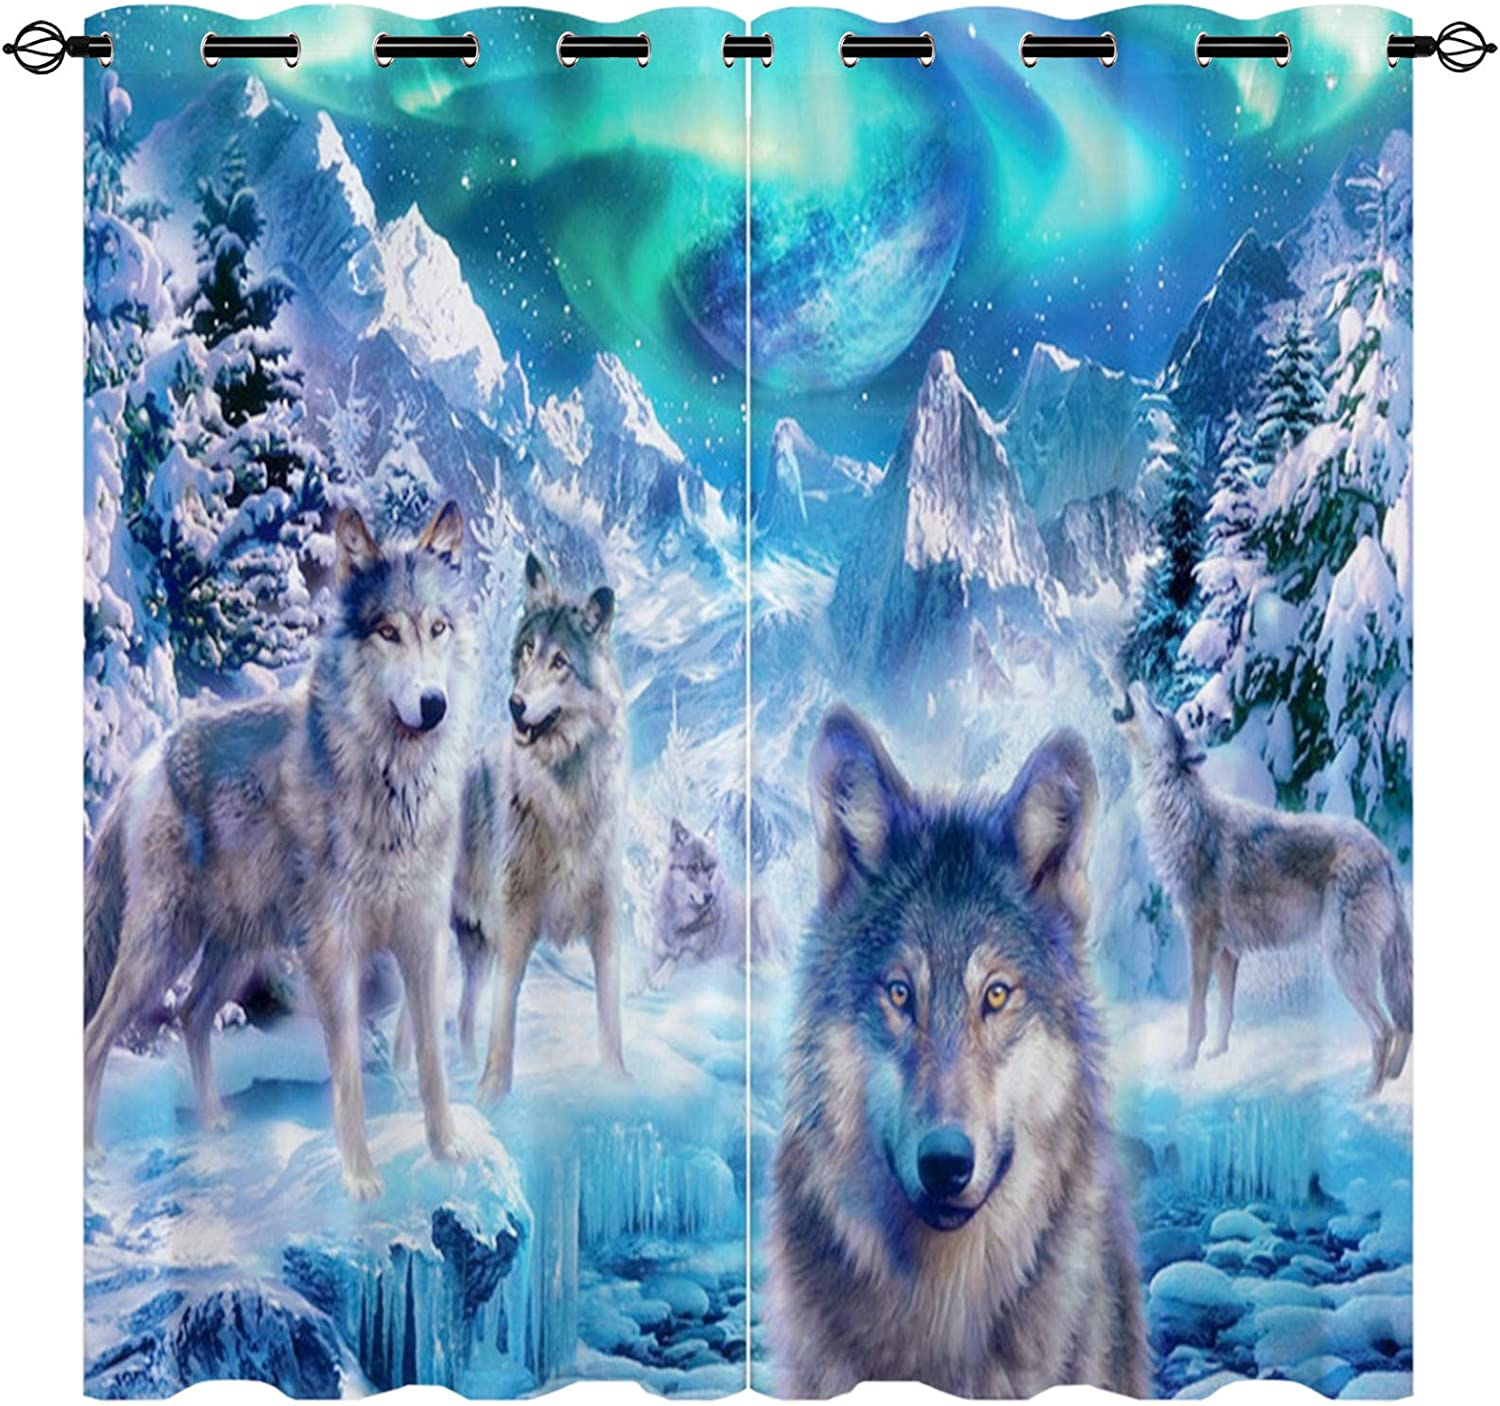 Eiichuang Wolf Blackout Curtains Galaxy Win Star Earth Sky Blue Max 51% OFF Free shipping anywhere in the nation